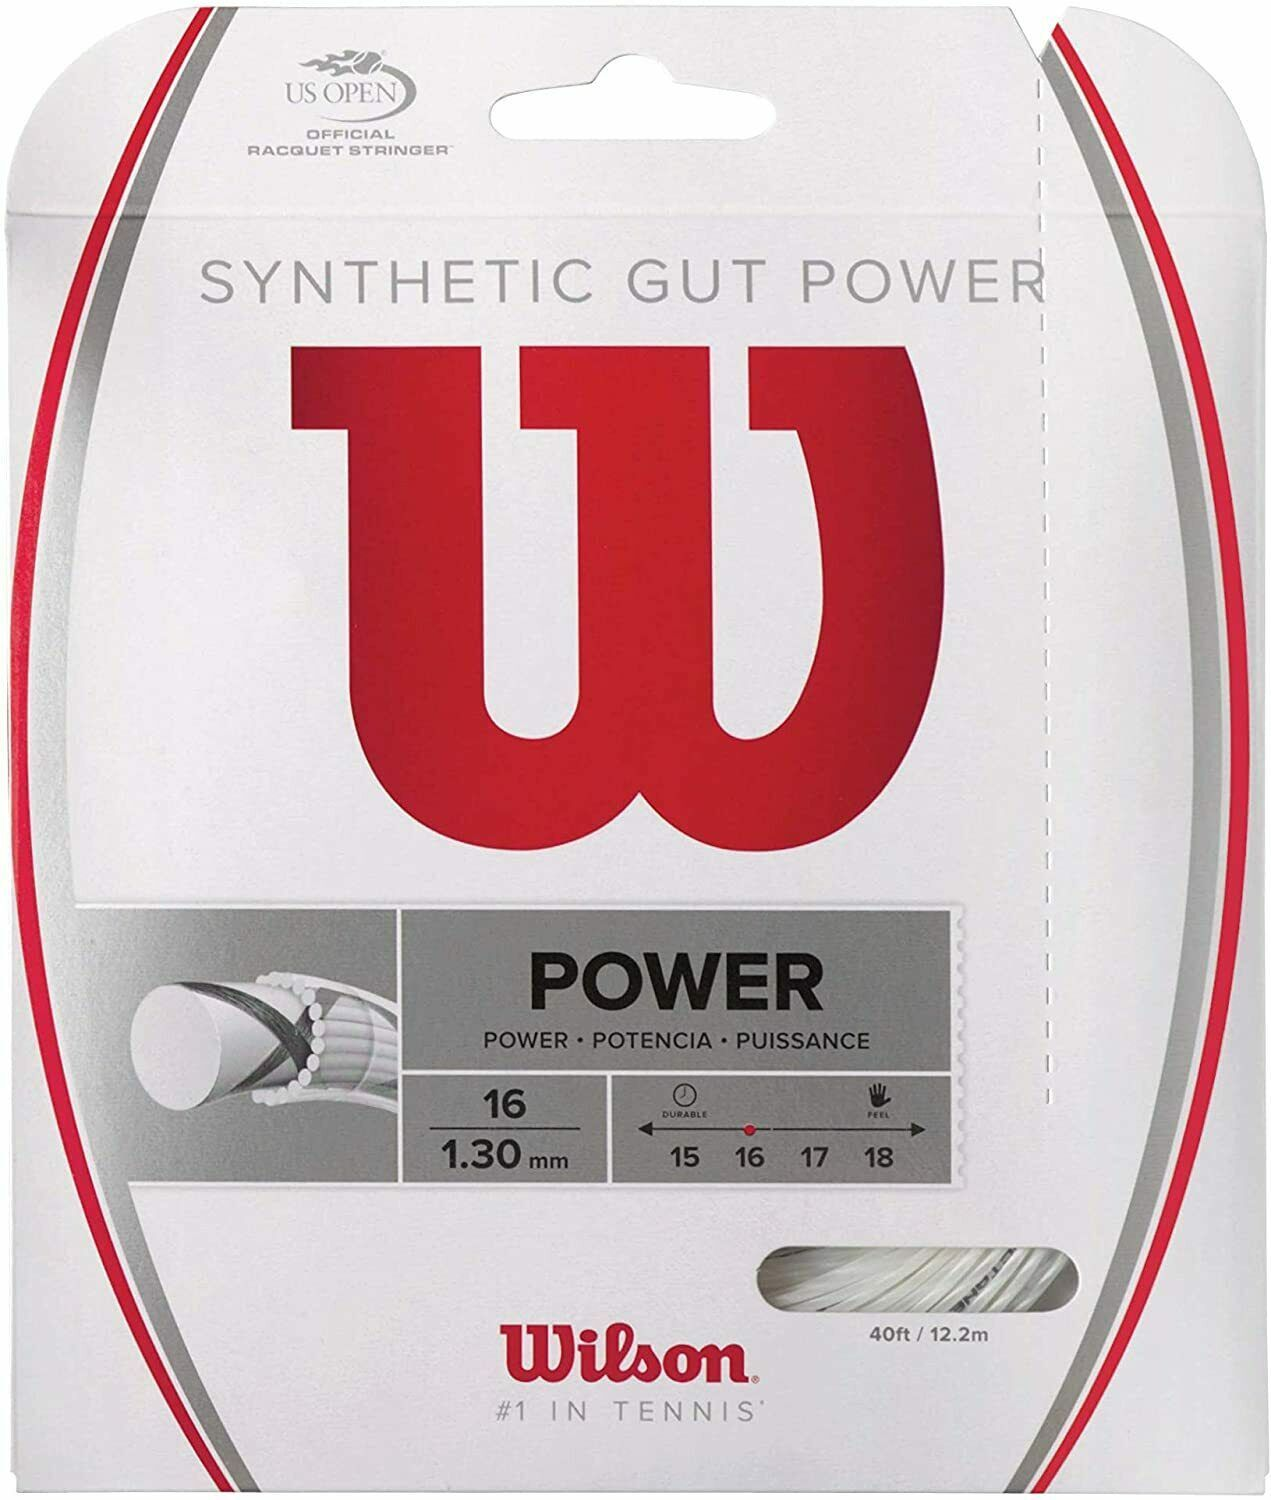 Primary image for Wilson - WRZ945100 - Synthetic Gut Power 16G Tennis Raquet String - White